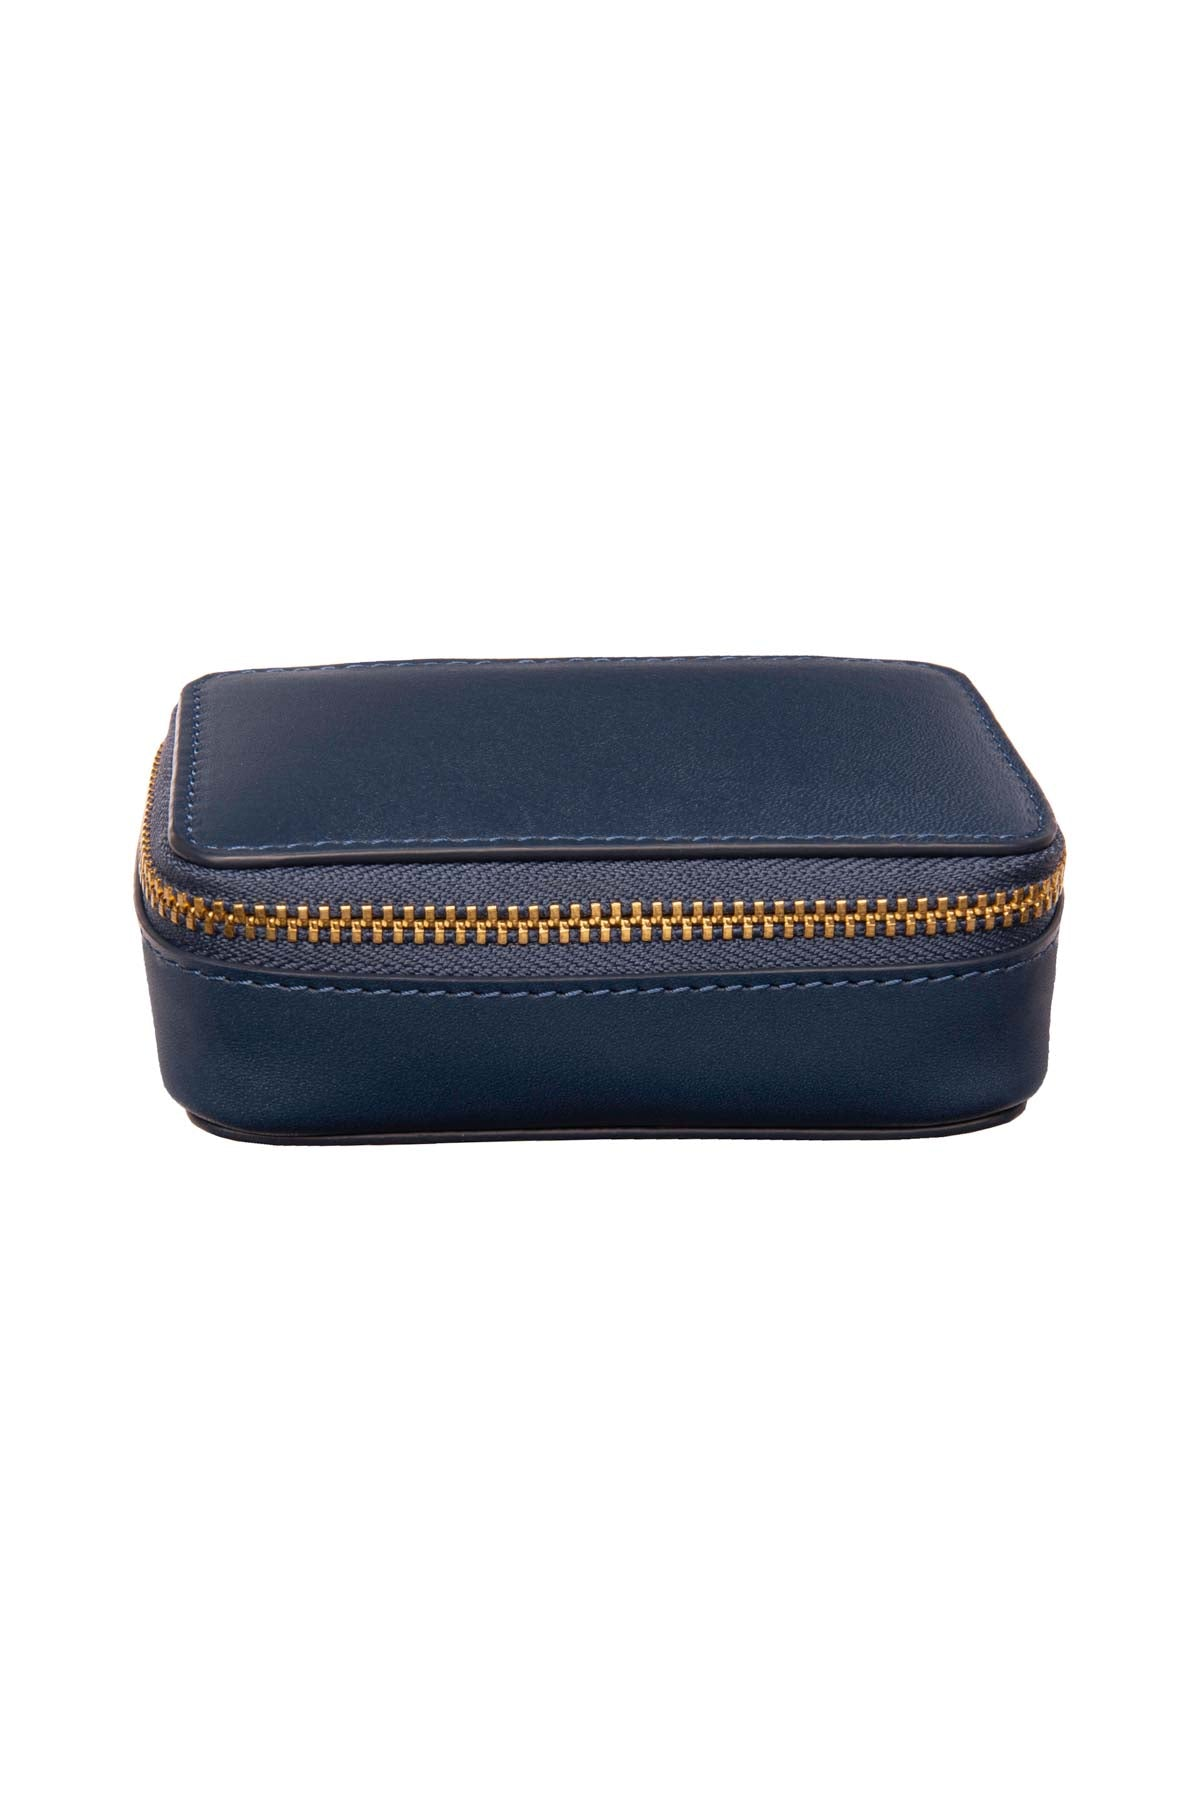 Leather Jewellery Zip Case - Navy